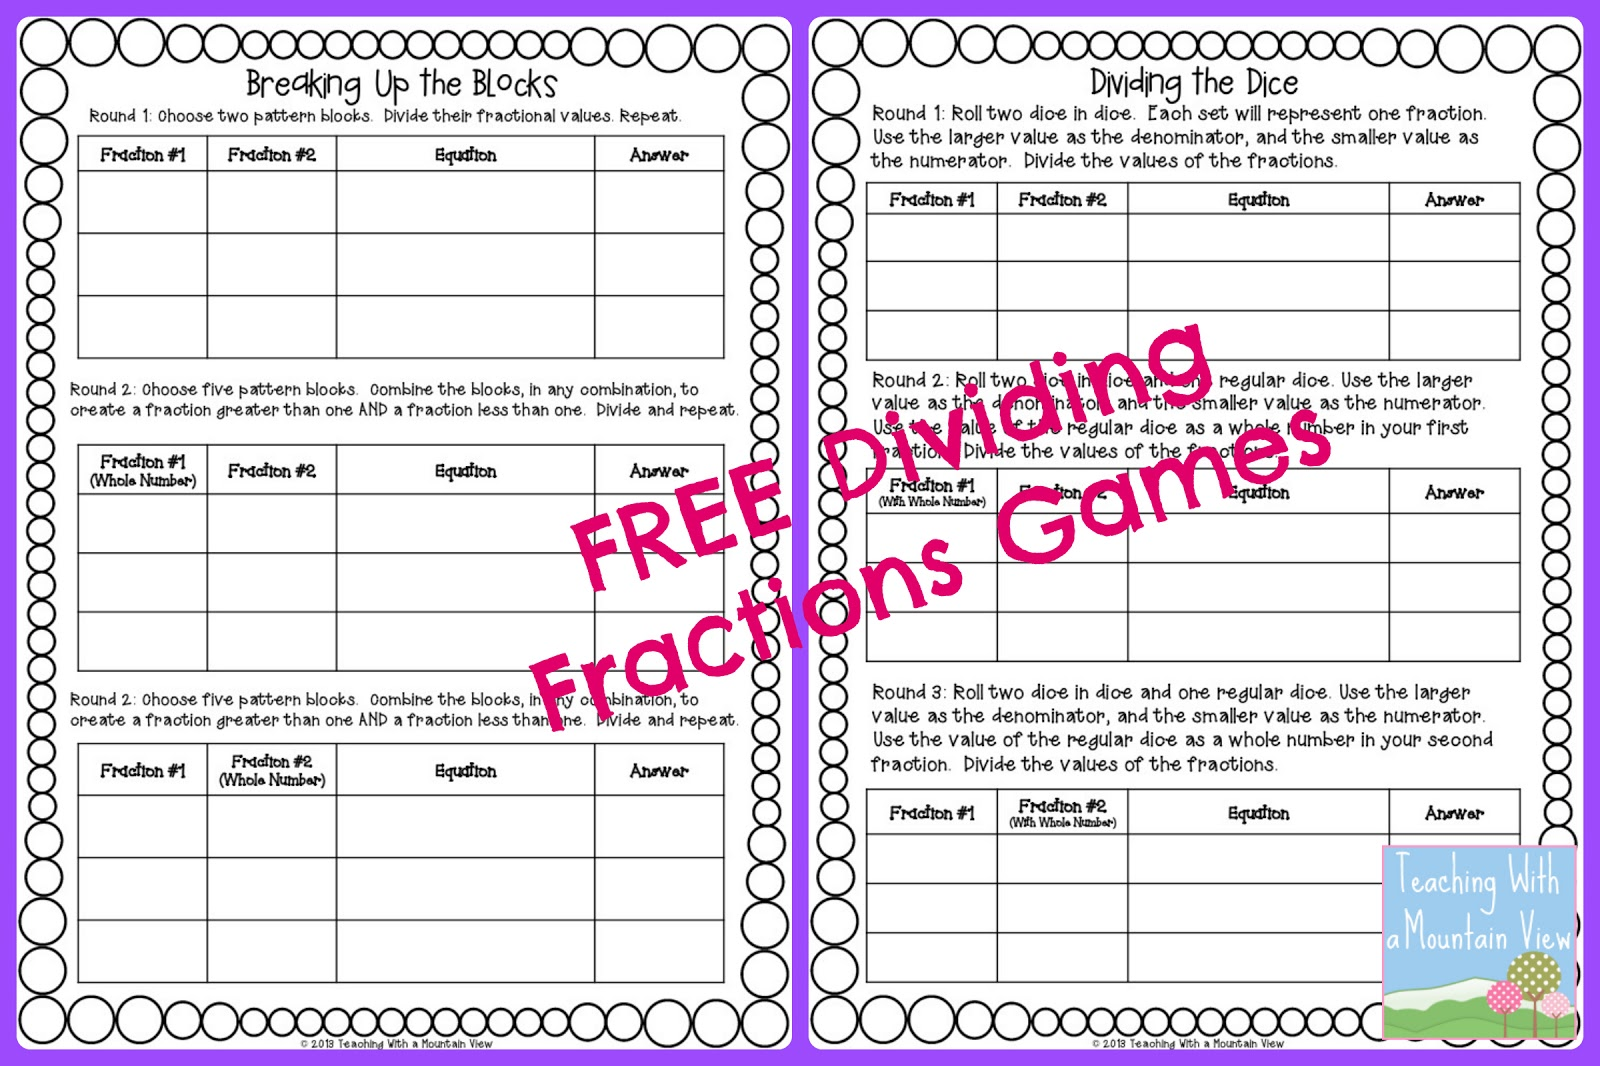 math worksheet : teaching with a mountain view dividing fractions anchor chart  : Pattern Block Fractions Worksheet